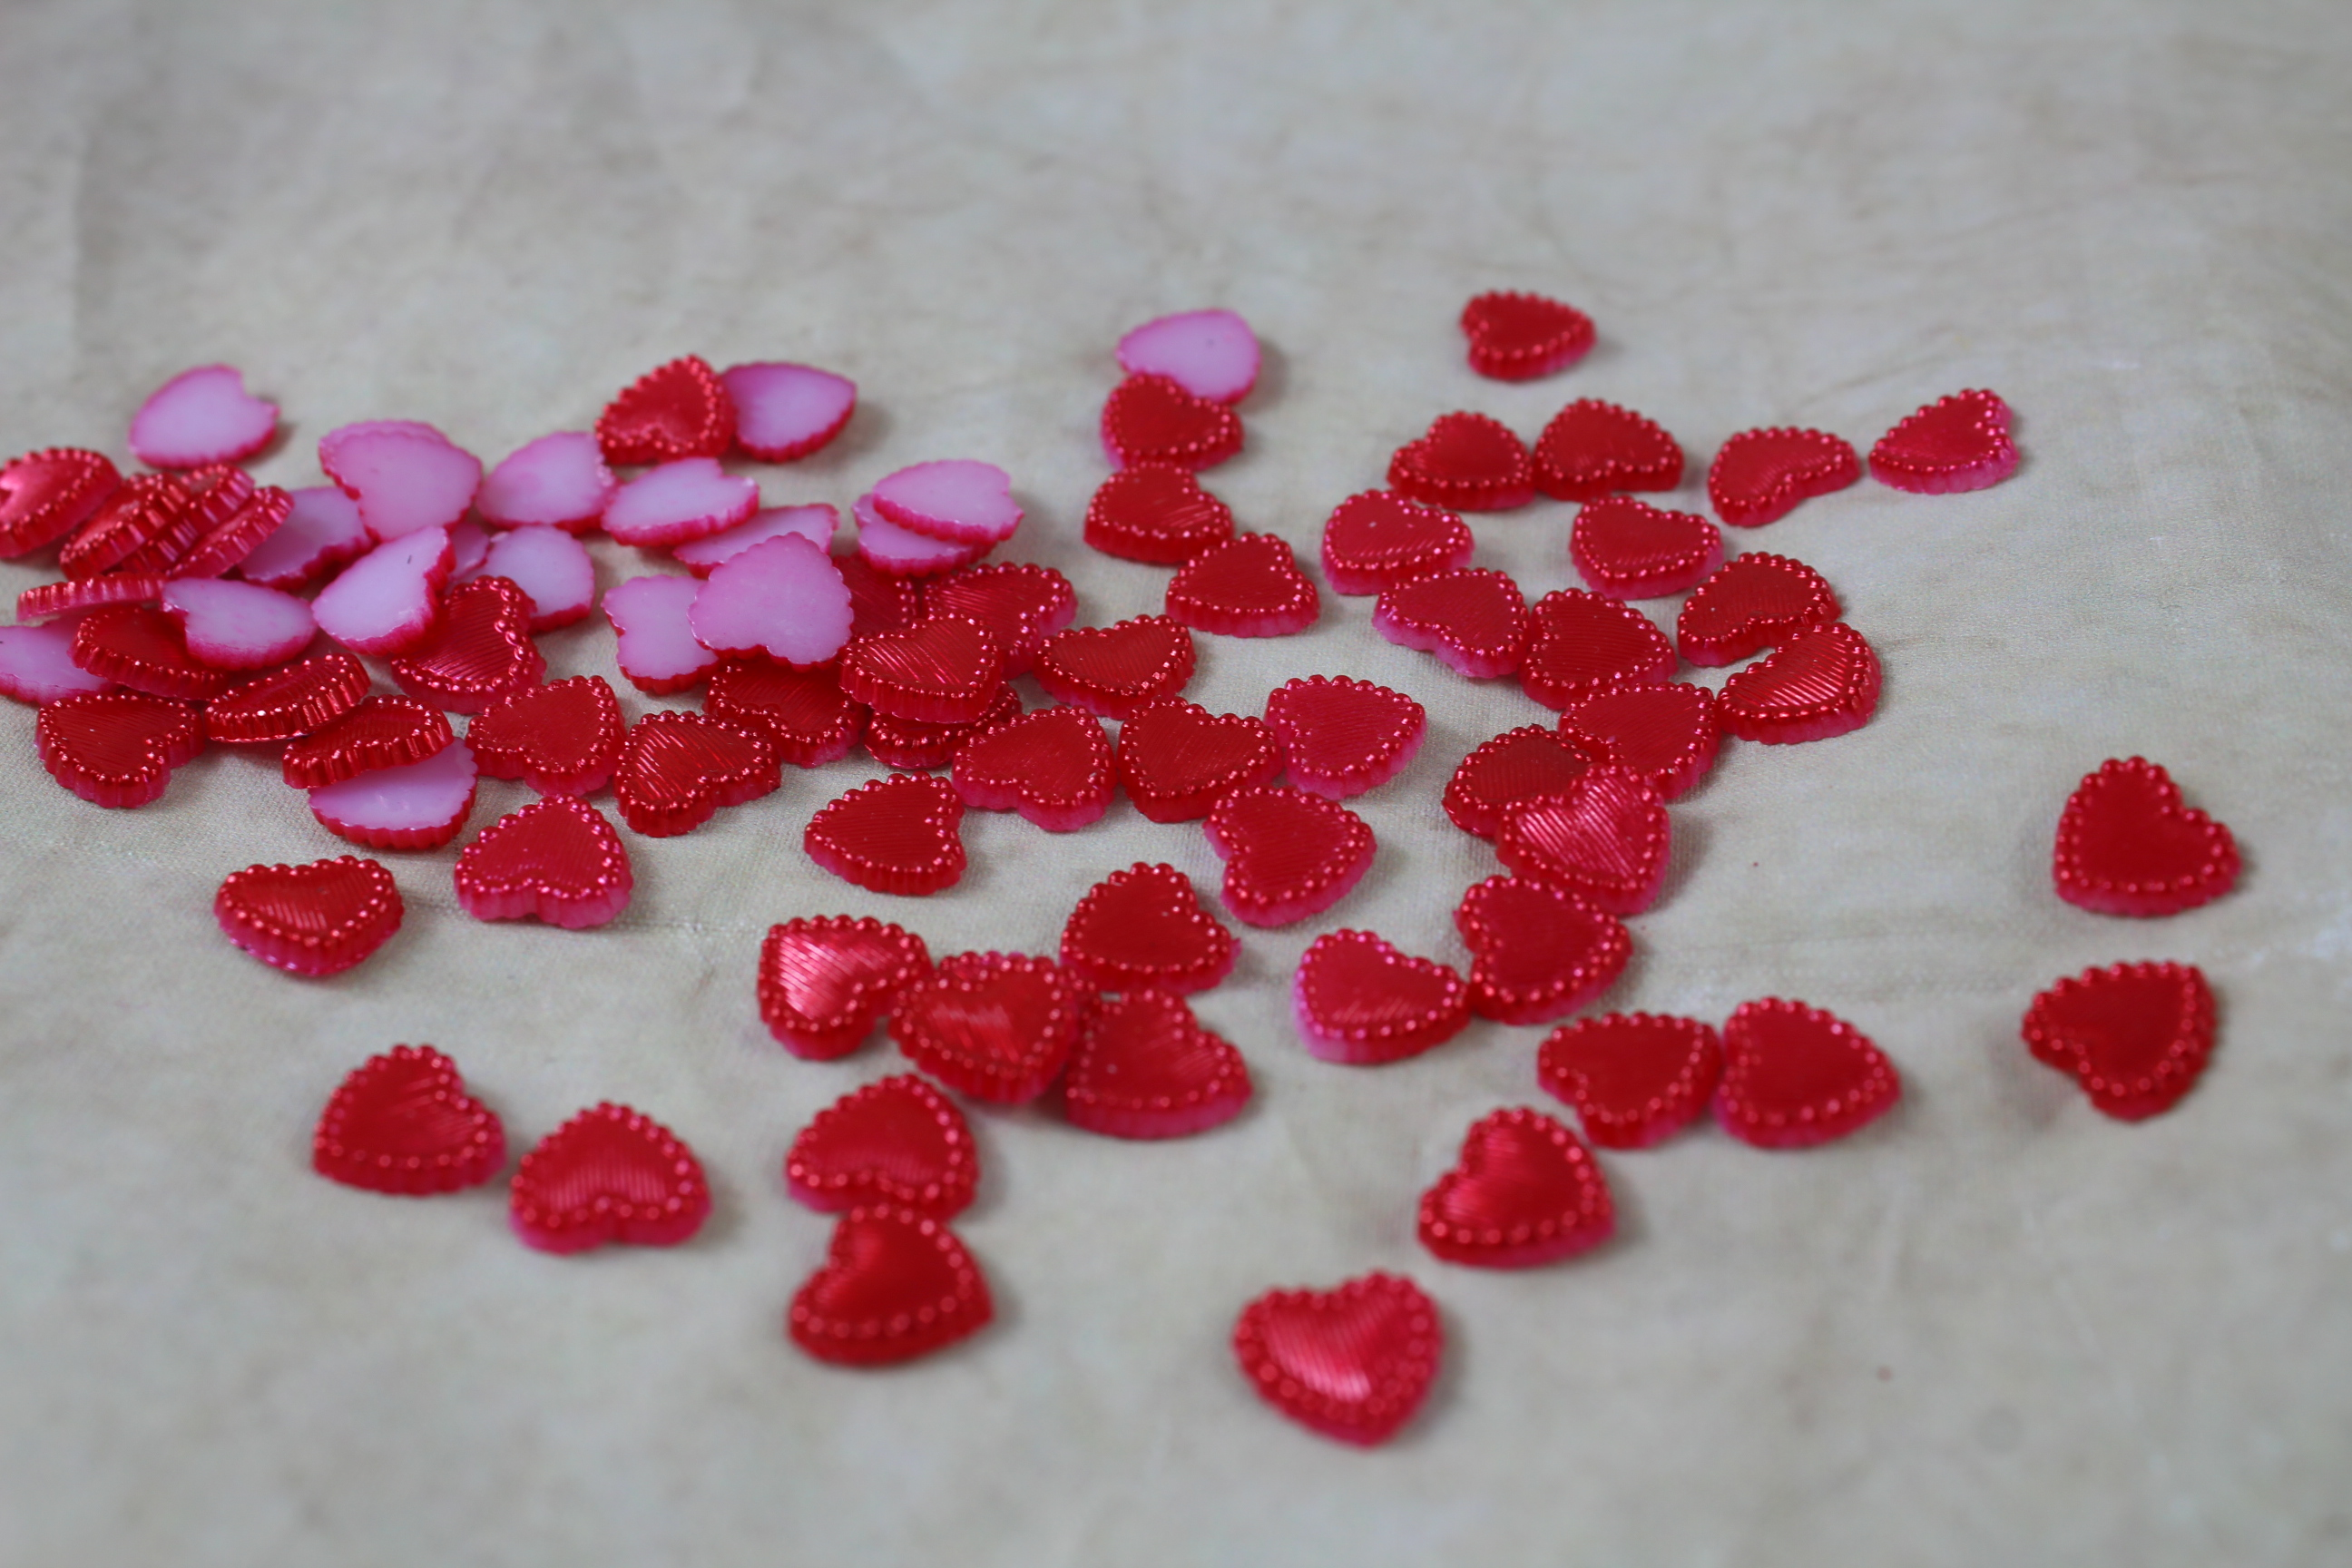 10mm Fabricated Scatter Hearts - BUY 3 PACKETS FOR THE PRICE OF 2!